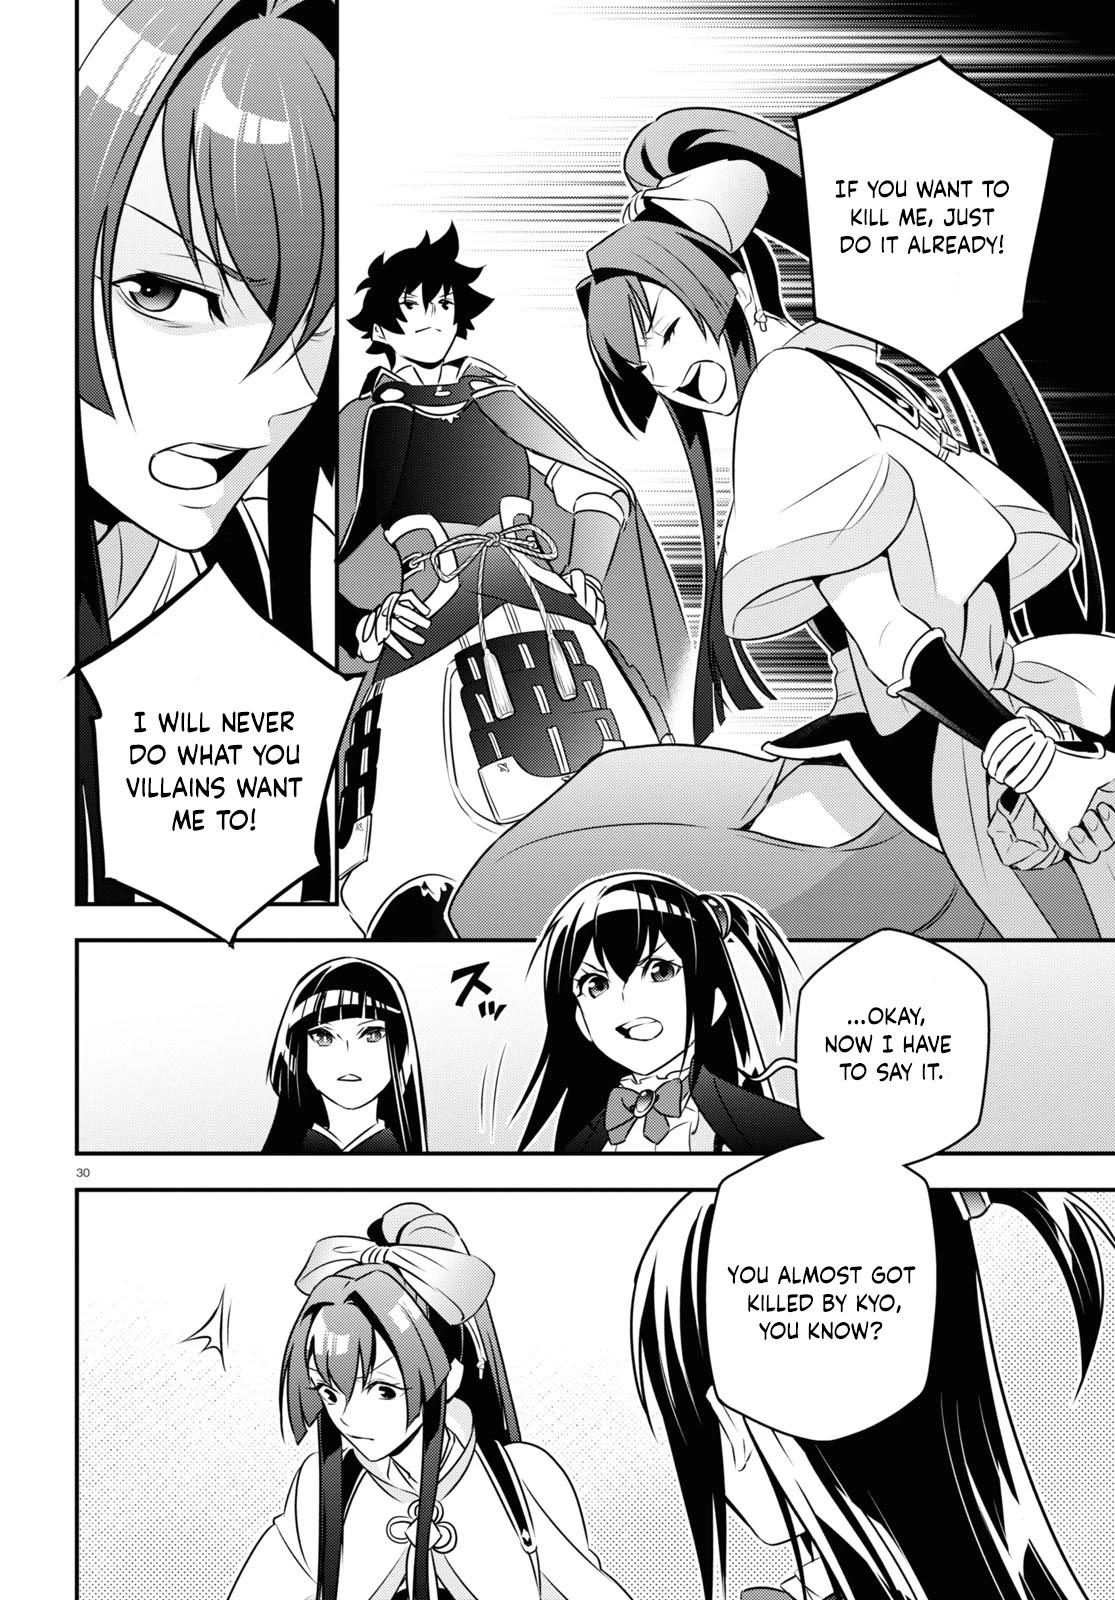 The Rising Of The Shield Hero Chapter 78: An Attacker That Charges Like A Boar page 30 - Mangakakalot